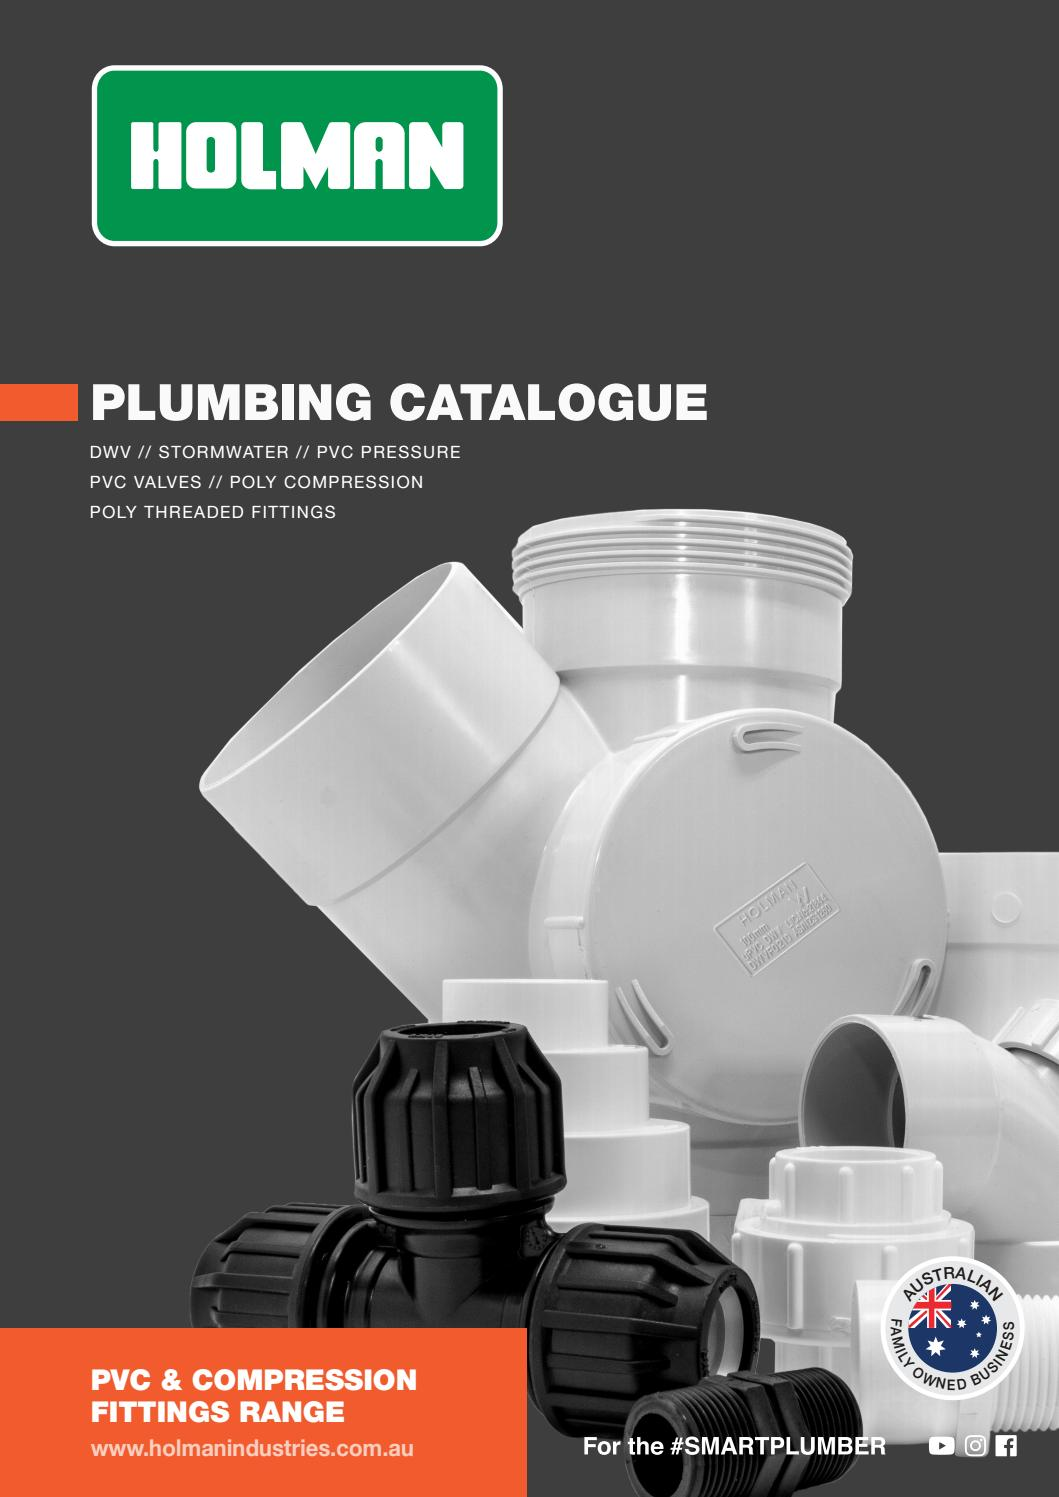 Holman Plumbing Catalogue 2018 by Holman Industries - issuu